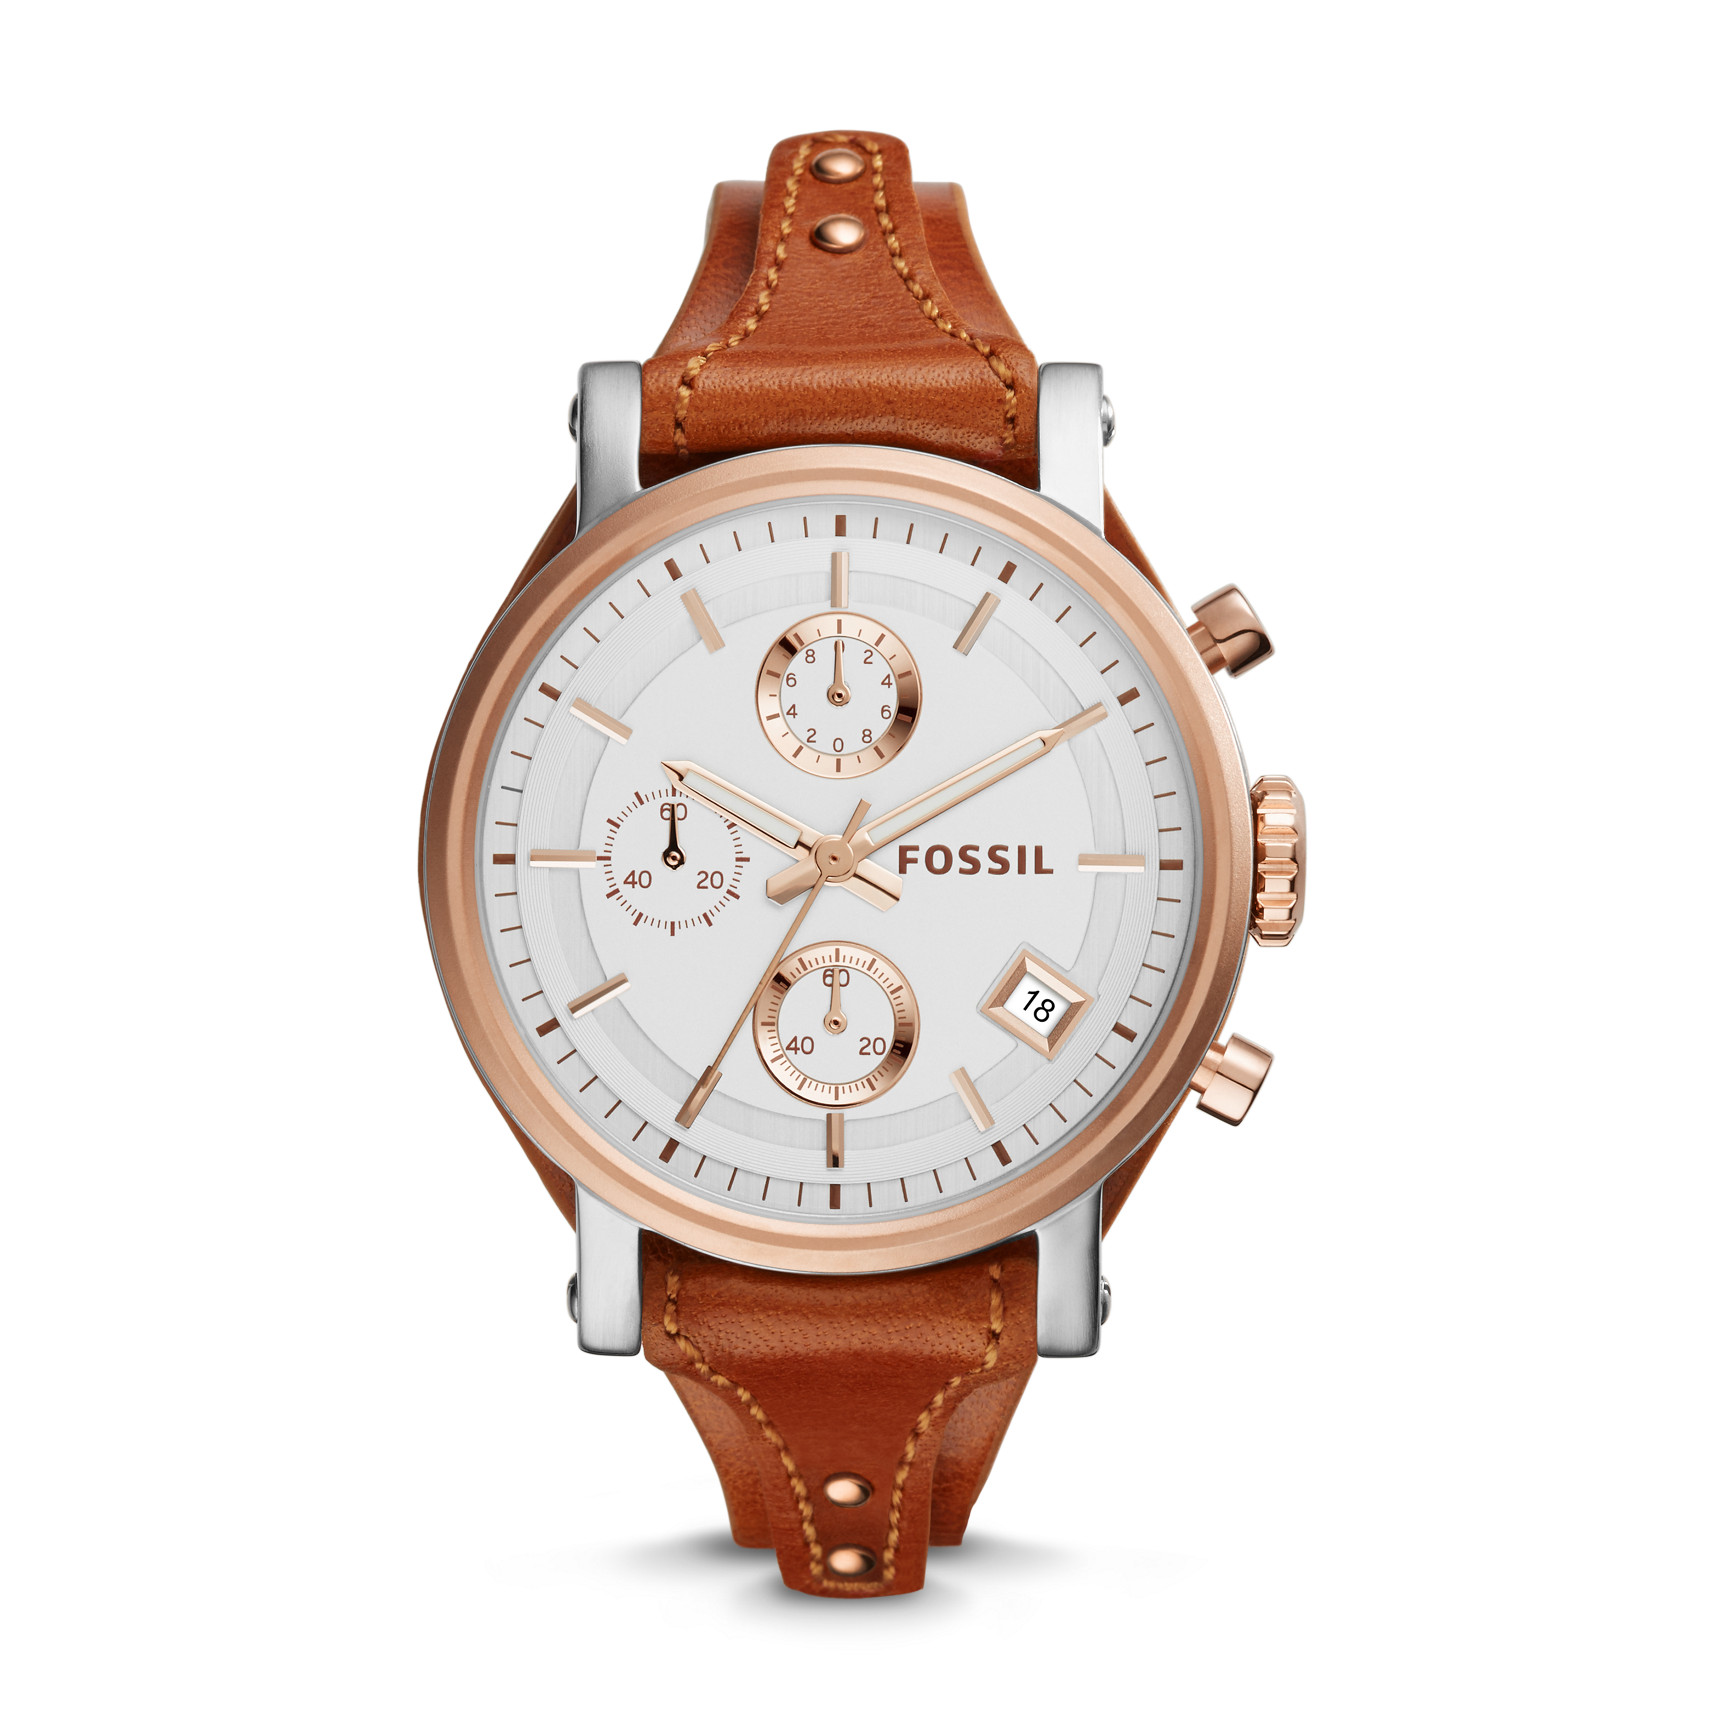 Original Boyfriend Chronograph Leather Watch – ES3837